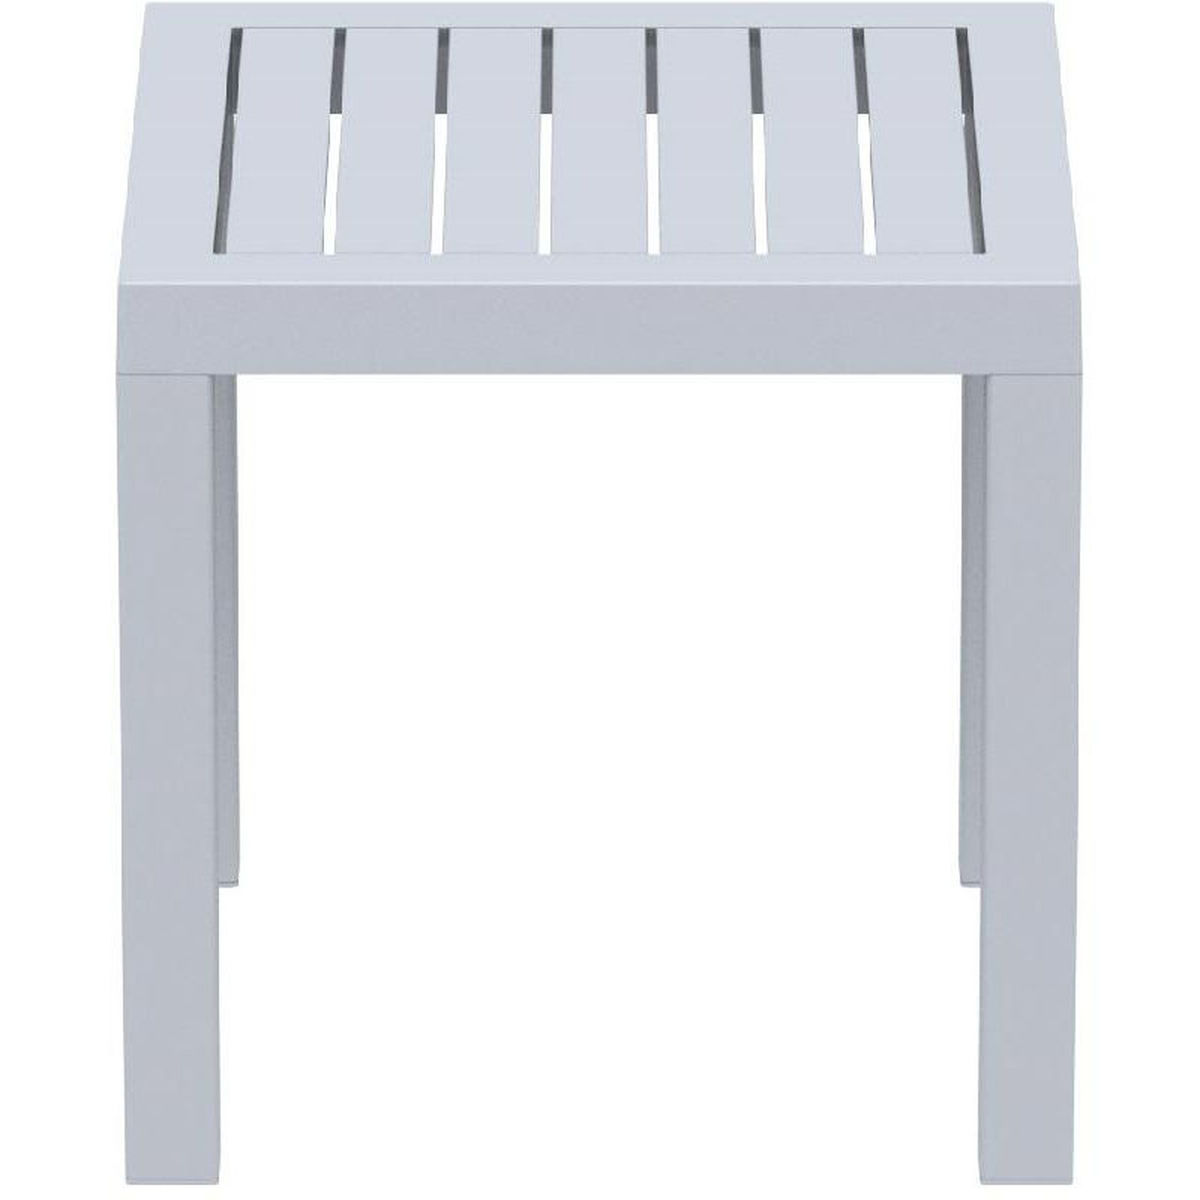 silver outdoor square side table sil compamia cmp grey our ocean resin gray now porch furniture colorful lamps wine stoppers target green glass lamp mcm round oak end next